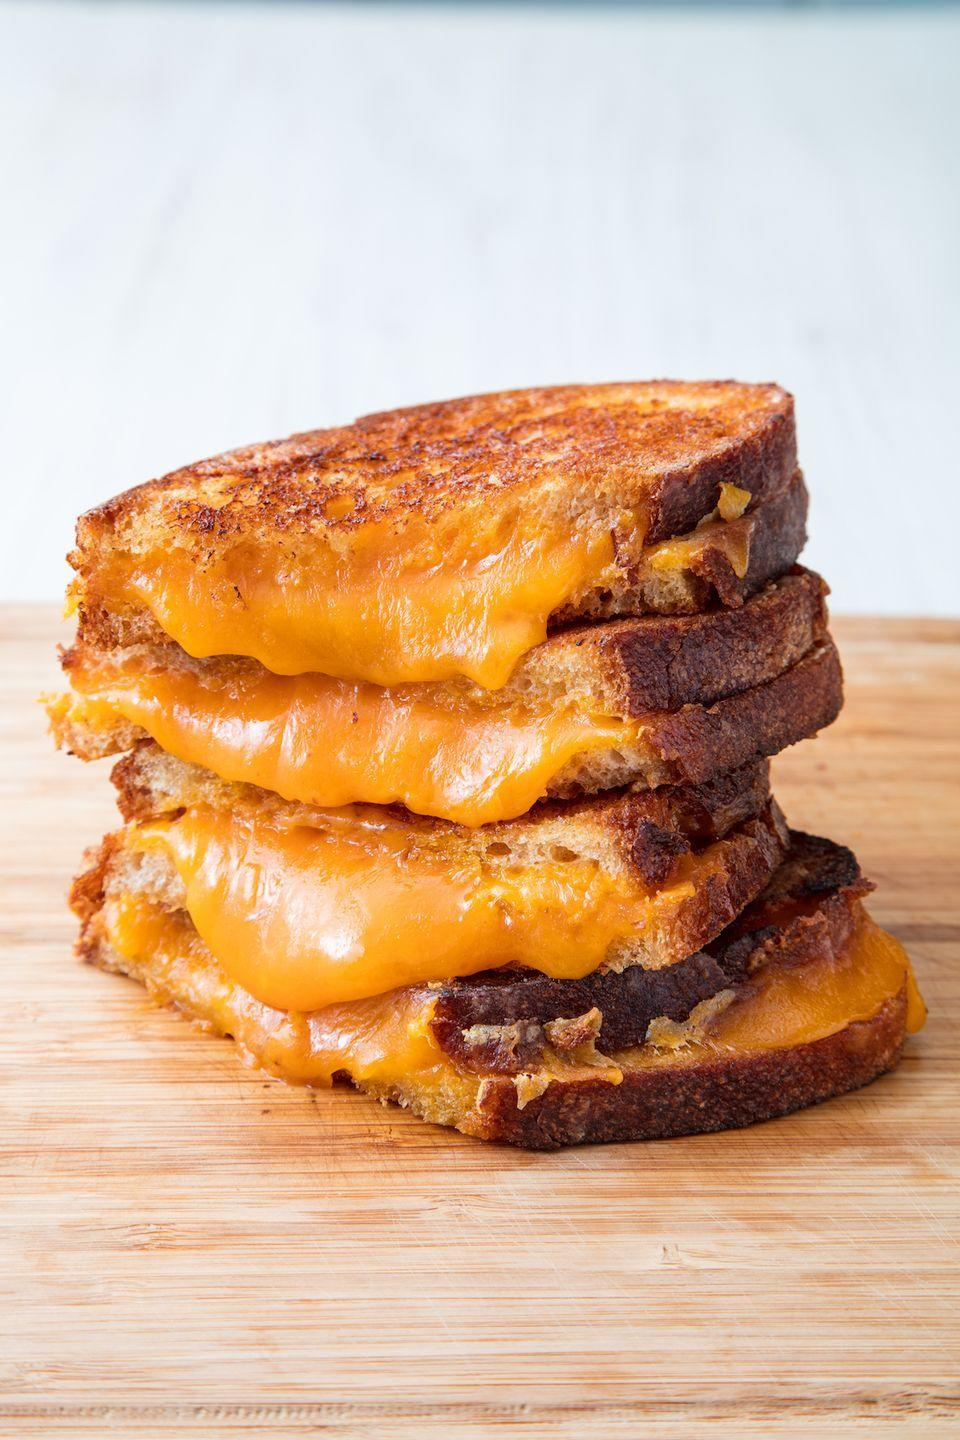 """<p>You can't beat a grilled cheese sandwich and tomato soup.</p><p>Get the recipe from <a href=""""https://www.delish.com/cooking/recipe-ideas/a19610233/how-to-make-best-grilled-cheese/"""" rel=""""nofollow noopener"""" target=""""_blank"""" data-ylk=""""slk:Delish."""" class=""""link rapid-noclick-resp"""">Delish.</a></p>"""